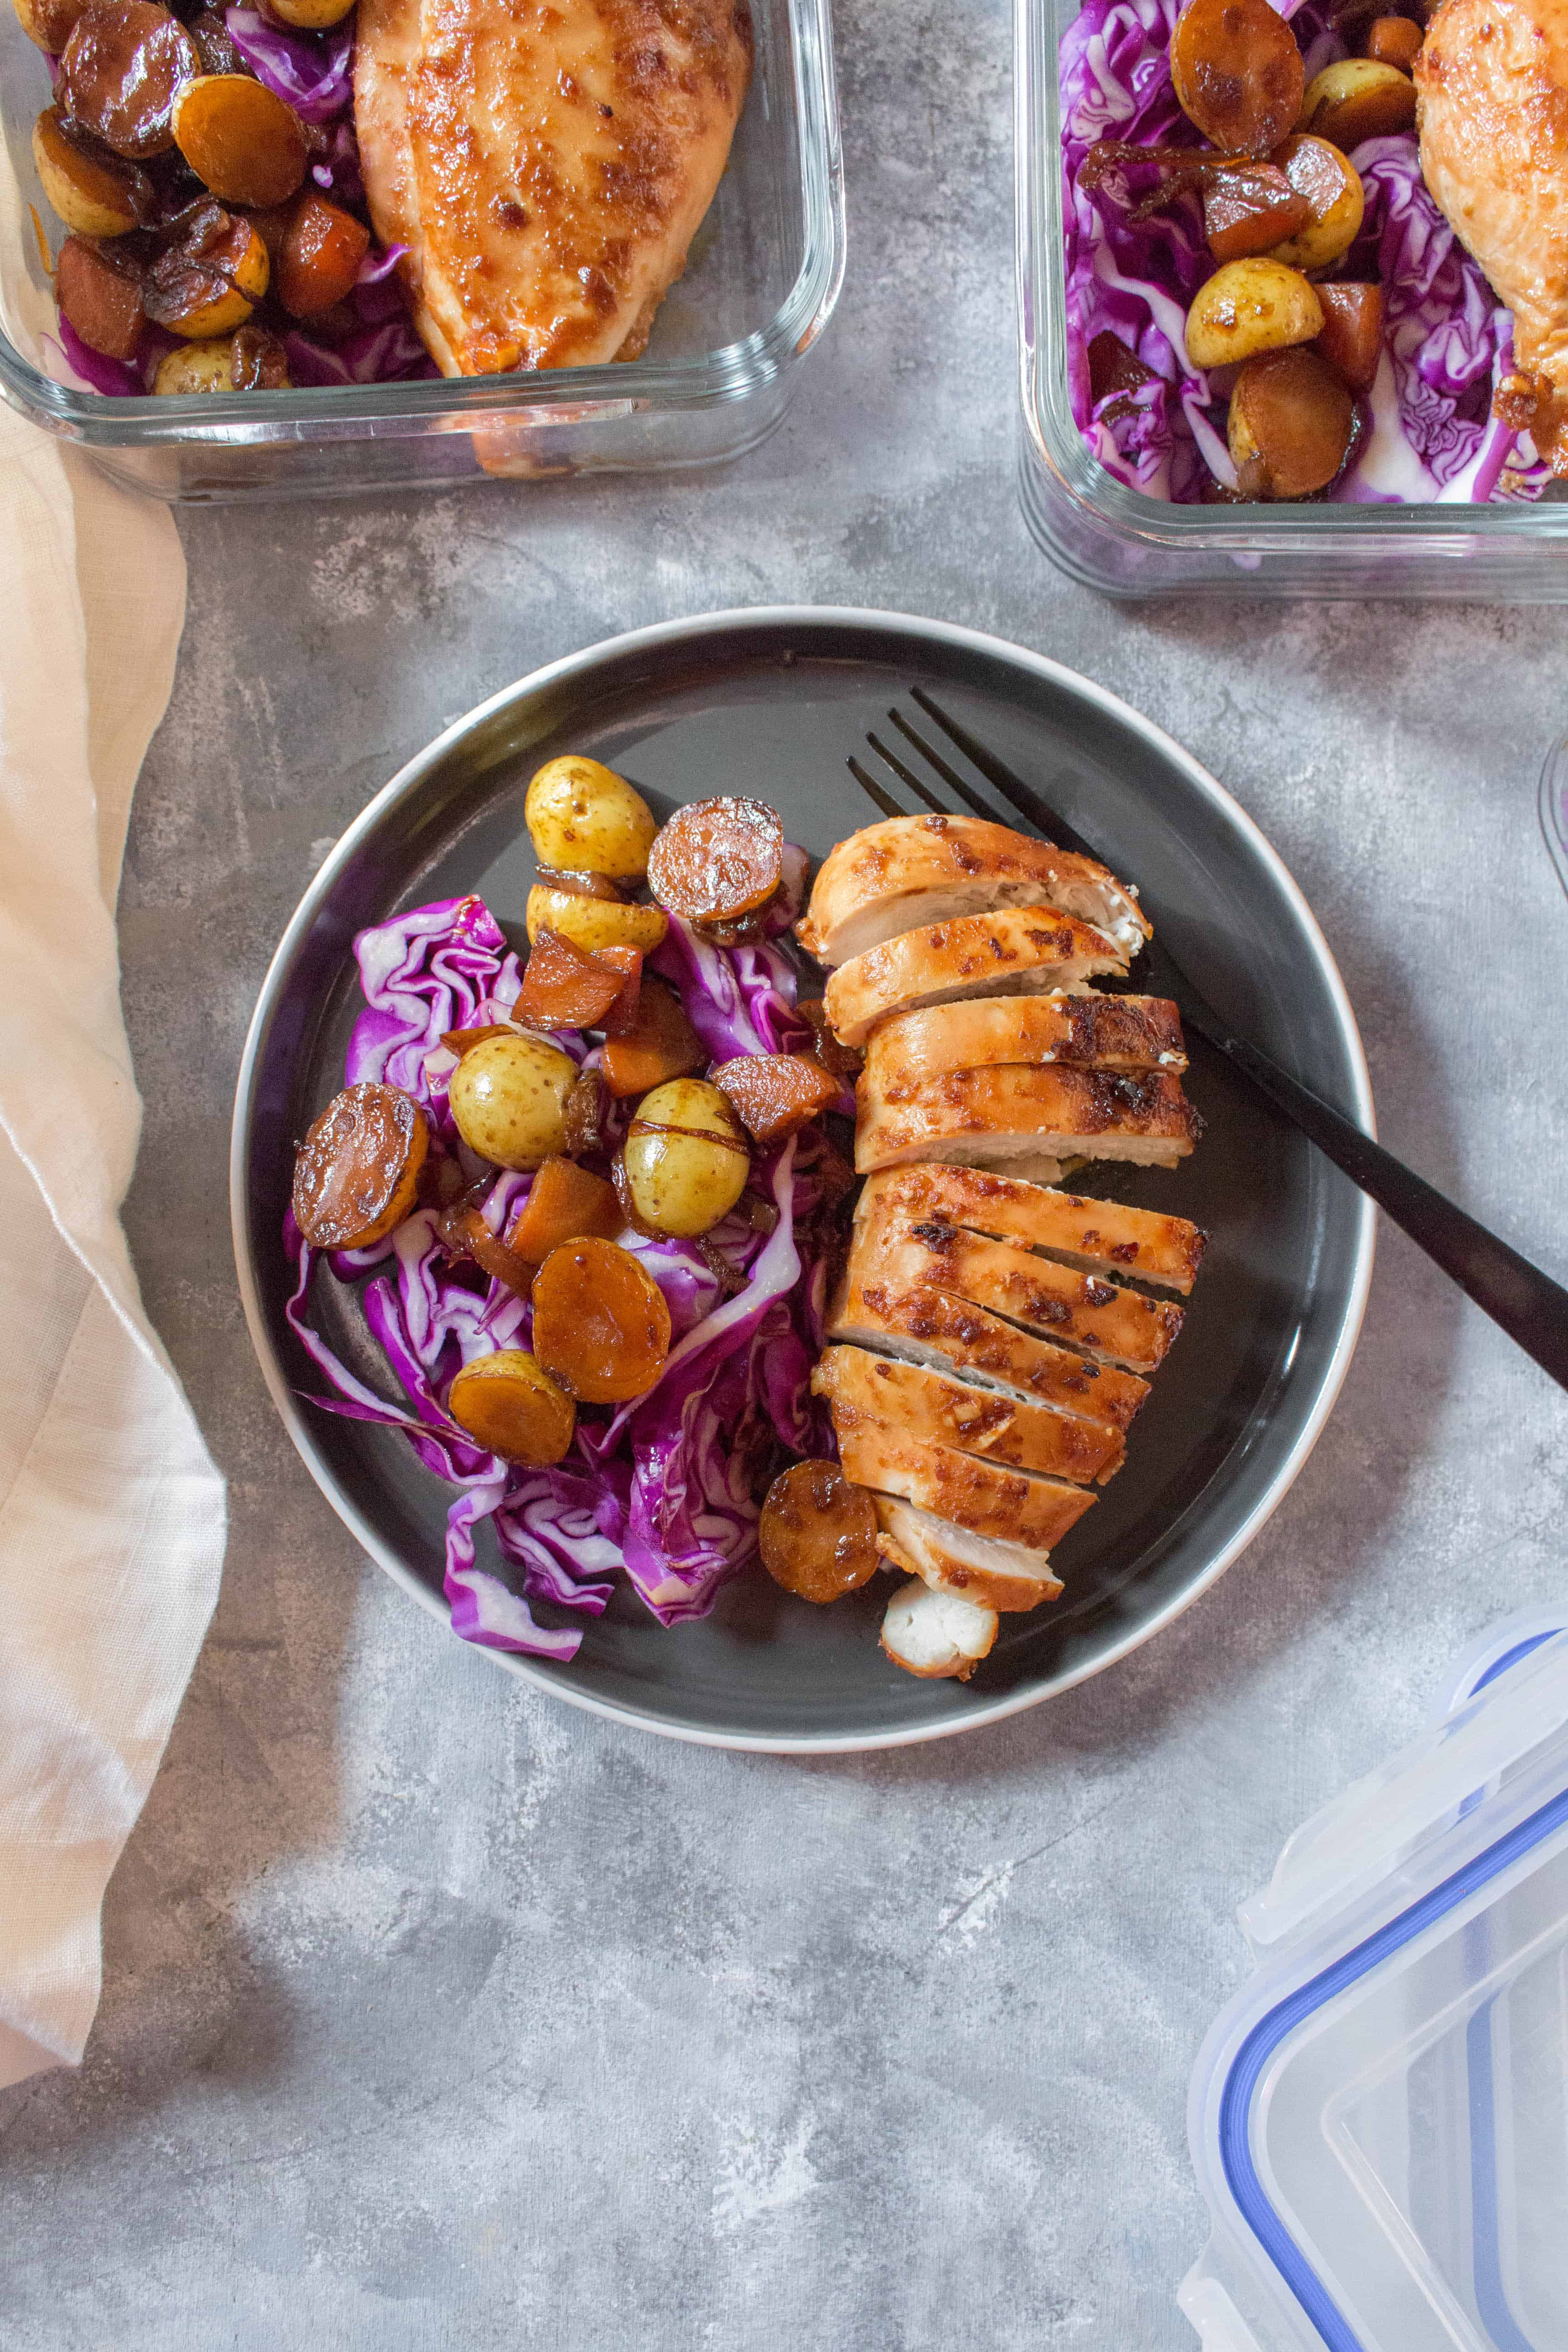 Looking for something a little different from your usual meat and potatoes meal prep? This Doenjang Chicken with Braised Potatoes makes for the perfect week's meal prep or as a Korean take-out alternative for dinner!